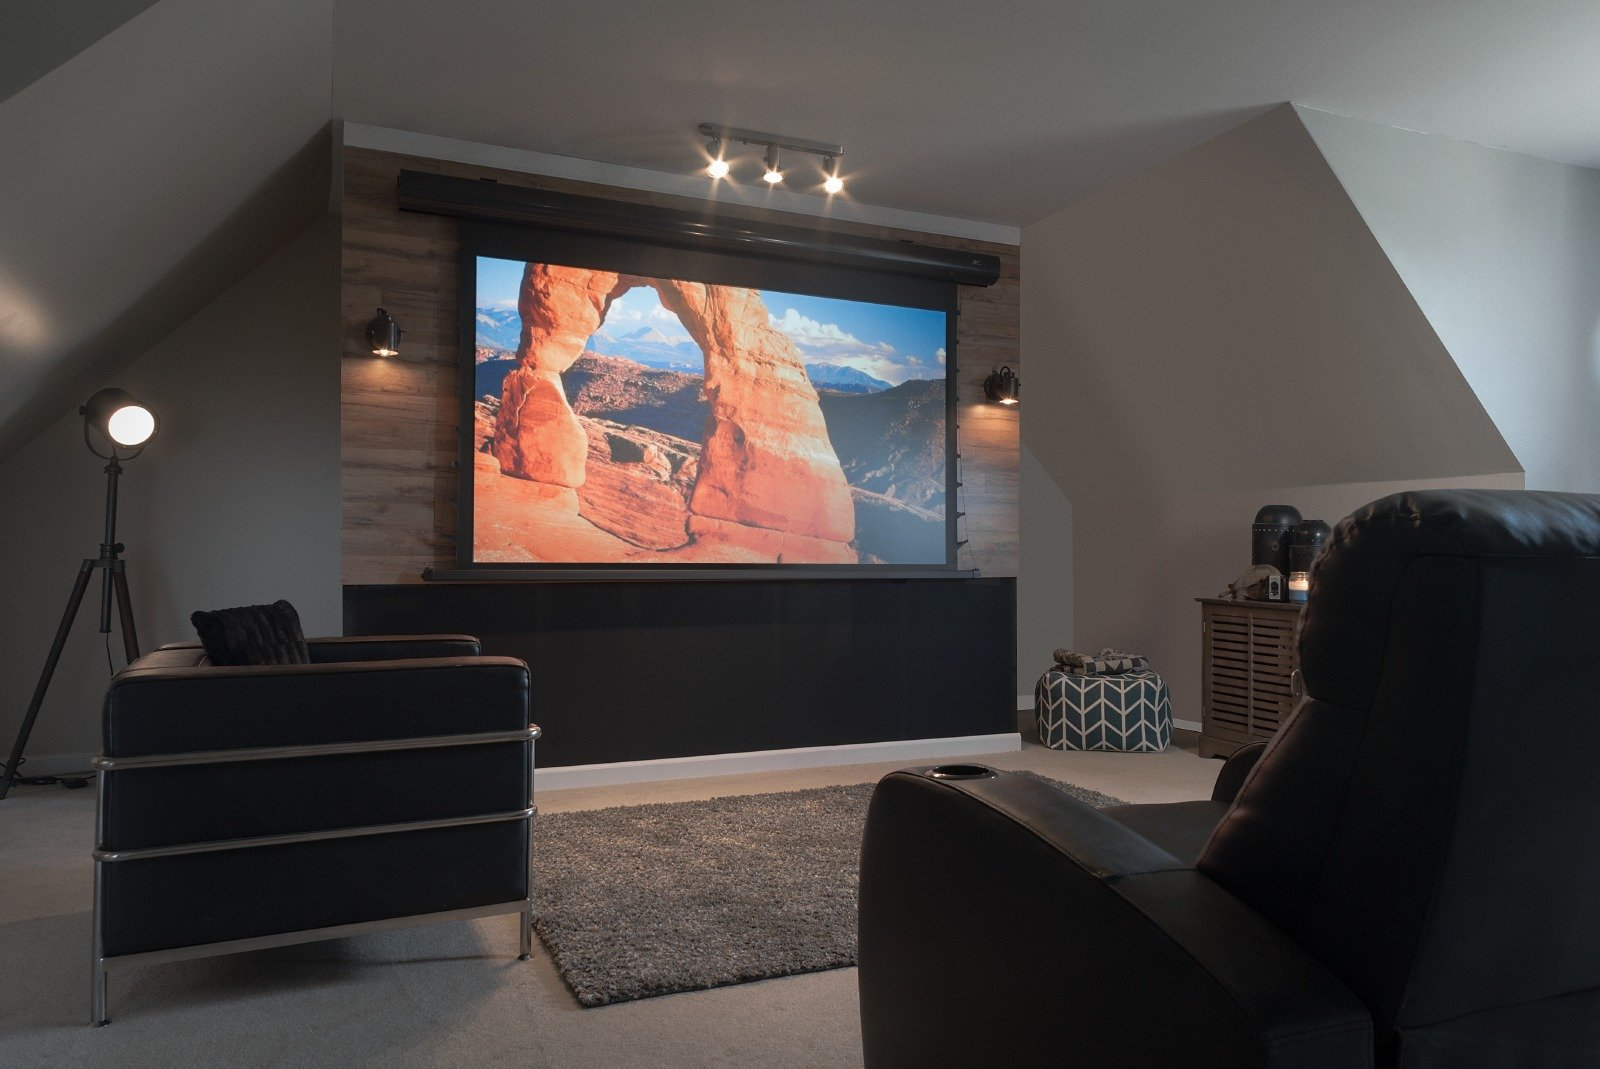 elite screens tageslicht leinwand saker cinegrey 5d heimkino. Black Bedroom Furniture Sets. Home Design Ideas